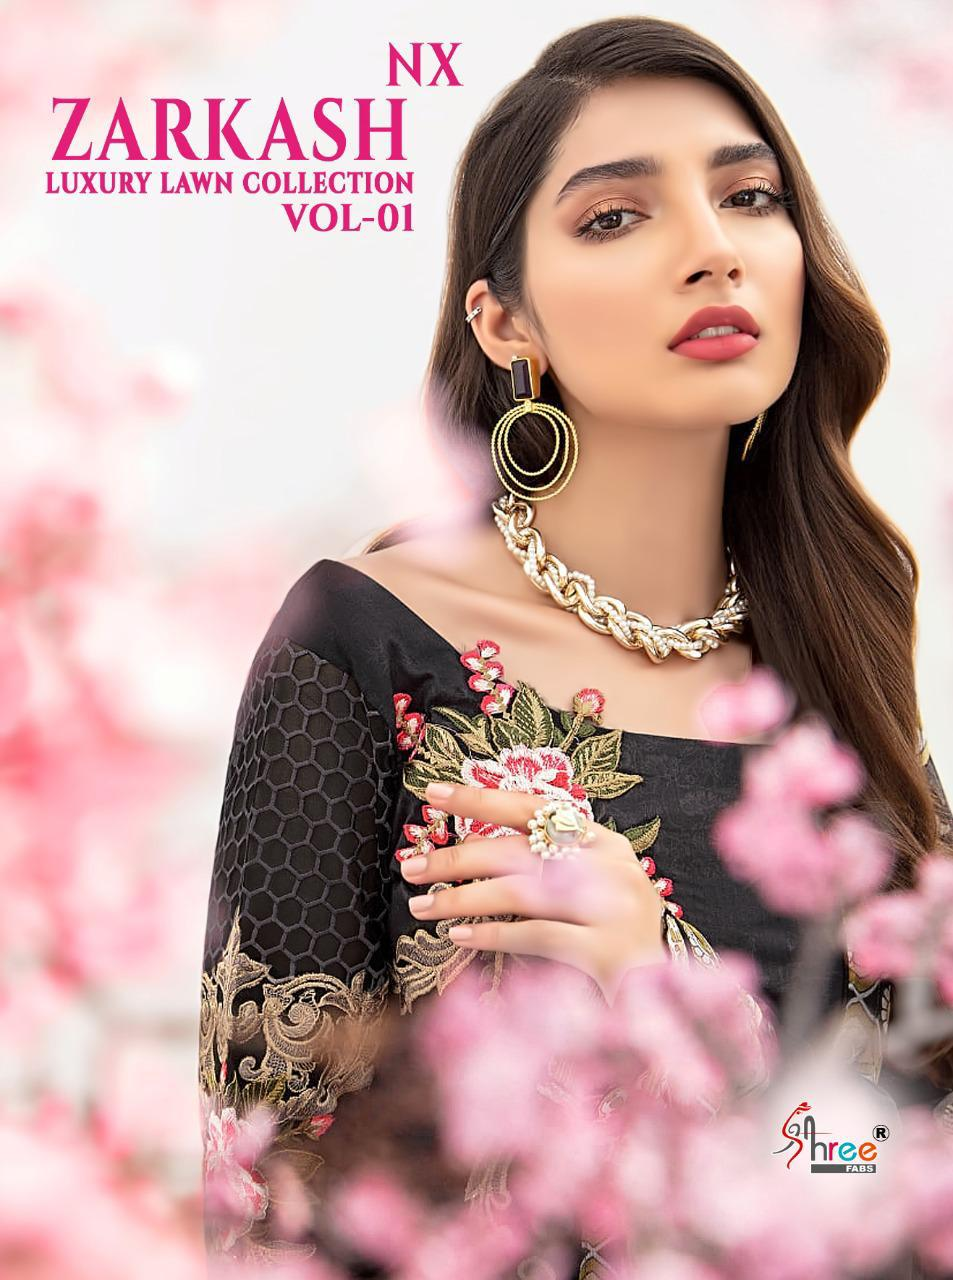 Shree Fabs Zarkash Luxury Lawn Collection Vol 1 Nx Salwar Suit Wholesale Catalog 3 Pcs 1 - Shree Fabs Zarkash Luxury Lawn Collection Vol 1 Nx Salwar Suit Wholesale Catalog 3 Pcs